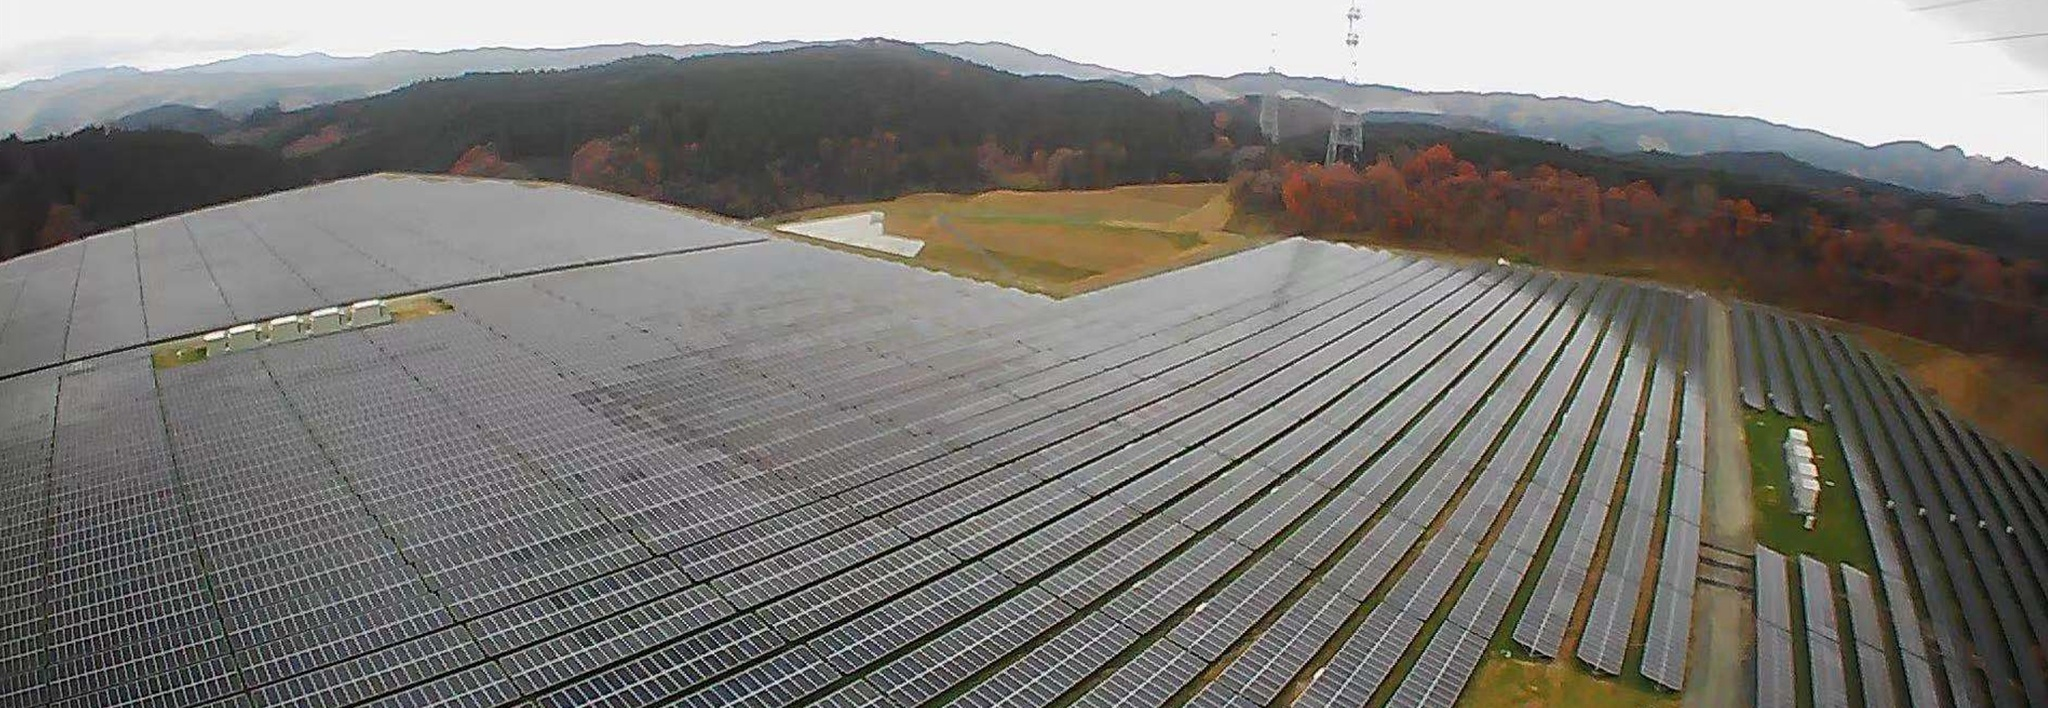 Clenergy Ground-mount PV-ezRack SolarTerrace II-A 18MW Solar Park in Japan